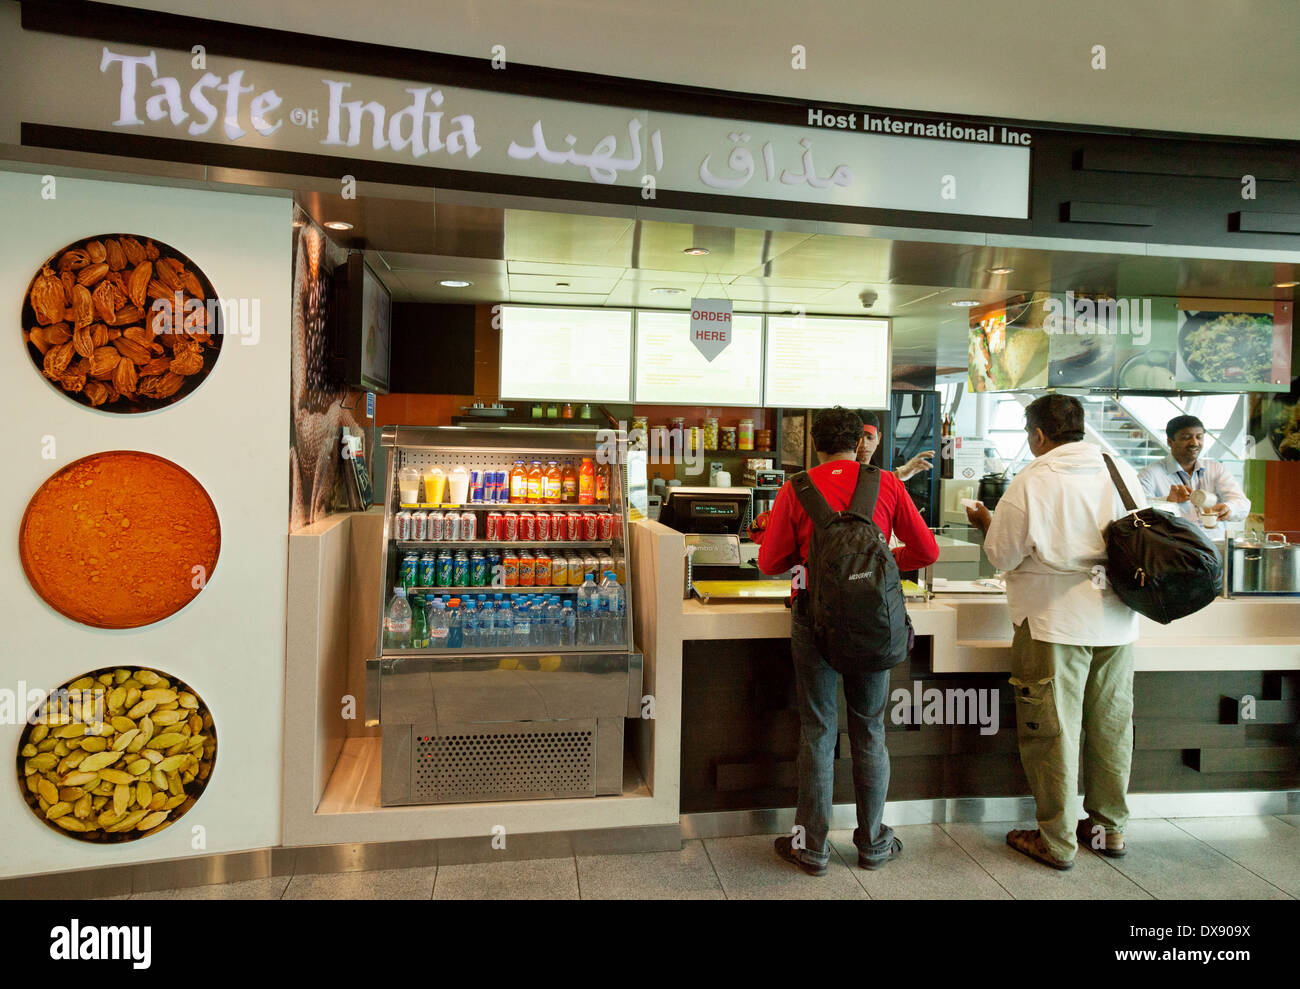 Taste of India cafe restaurant, Dubai airport terminal, UAE, Uited Arab Emirates, Middle East - Stock Image